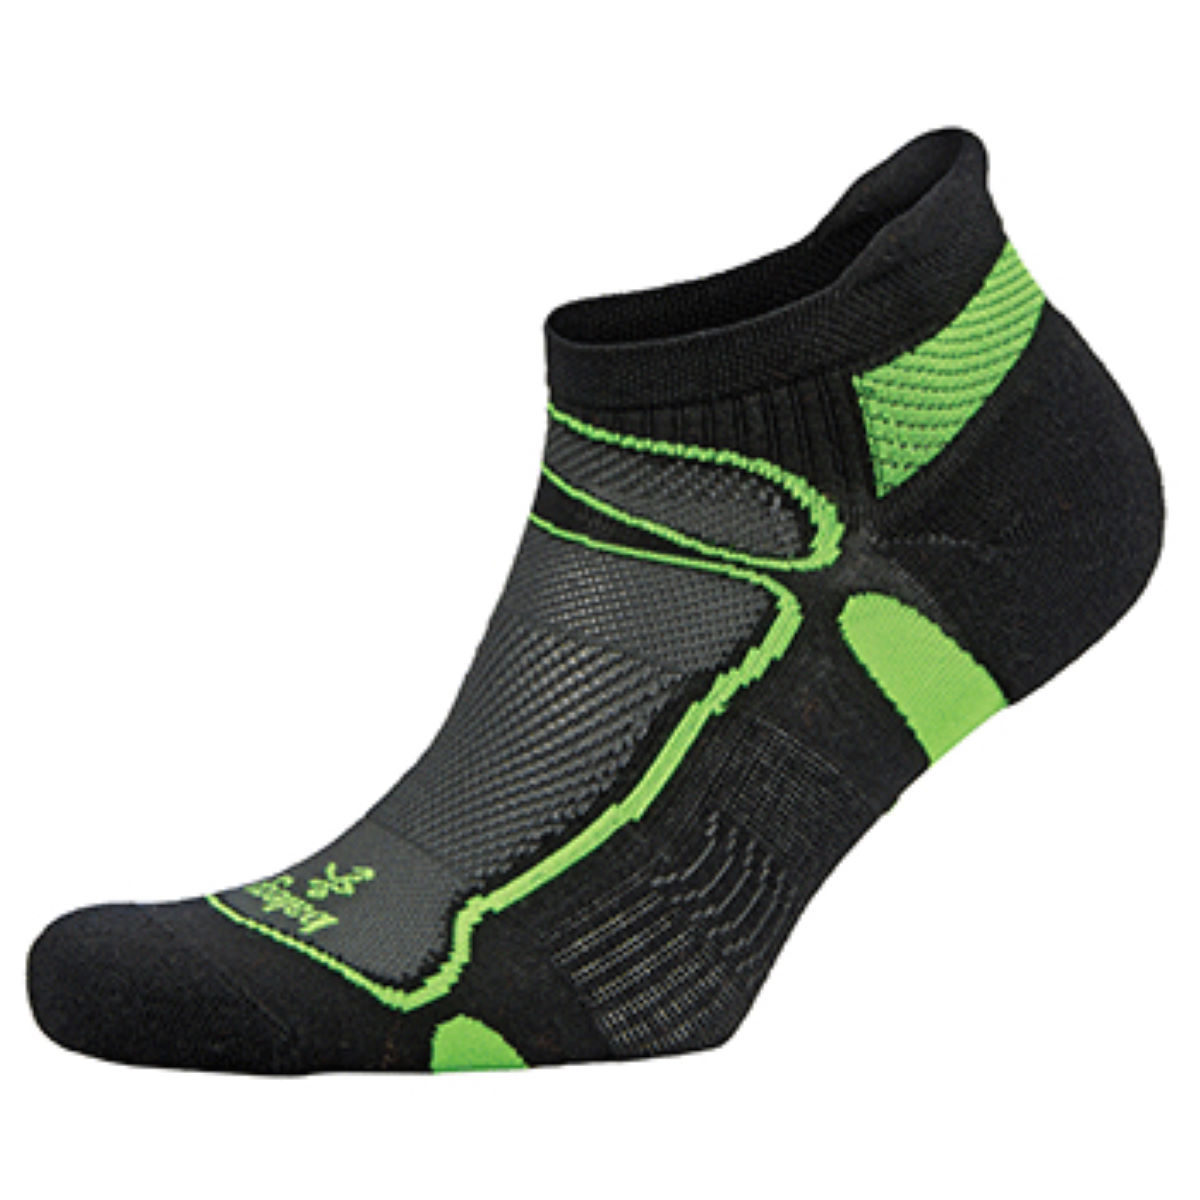 Calcetines tobilleros Balega Second Skin Ultralight - Calcetines para correr